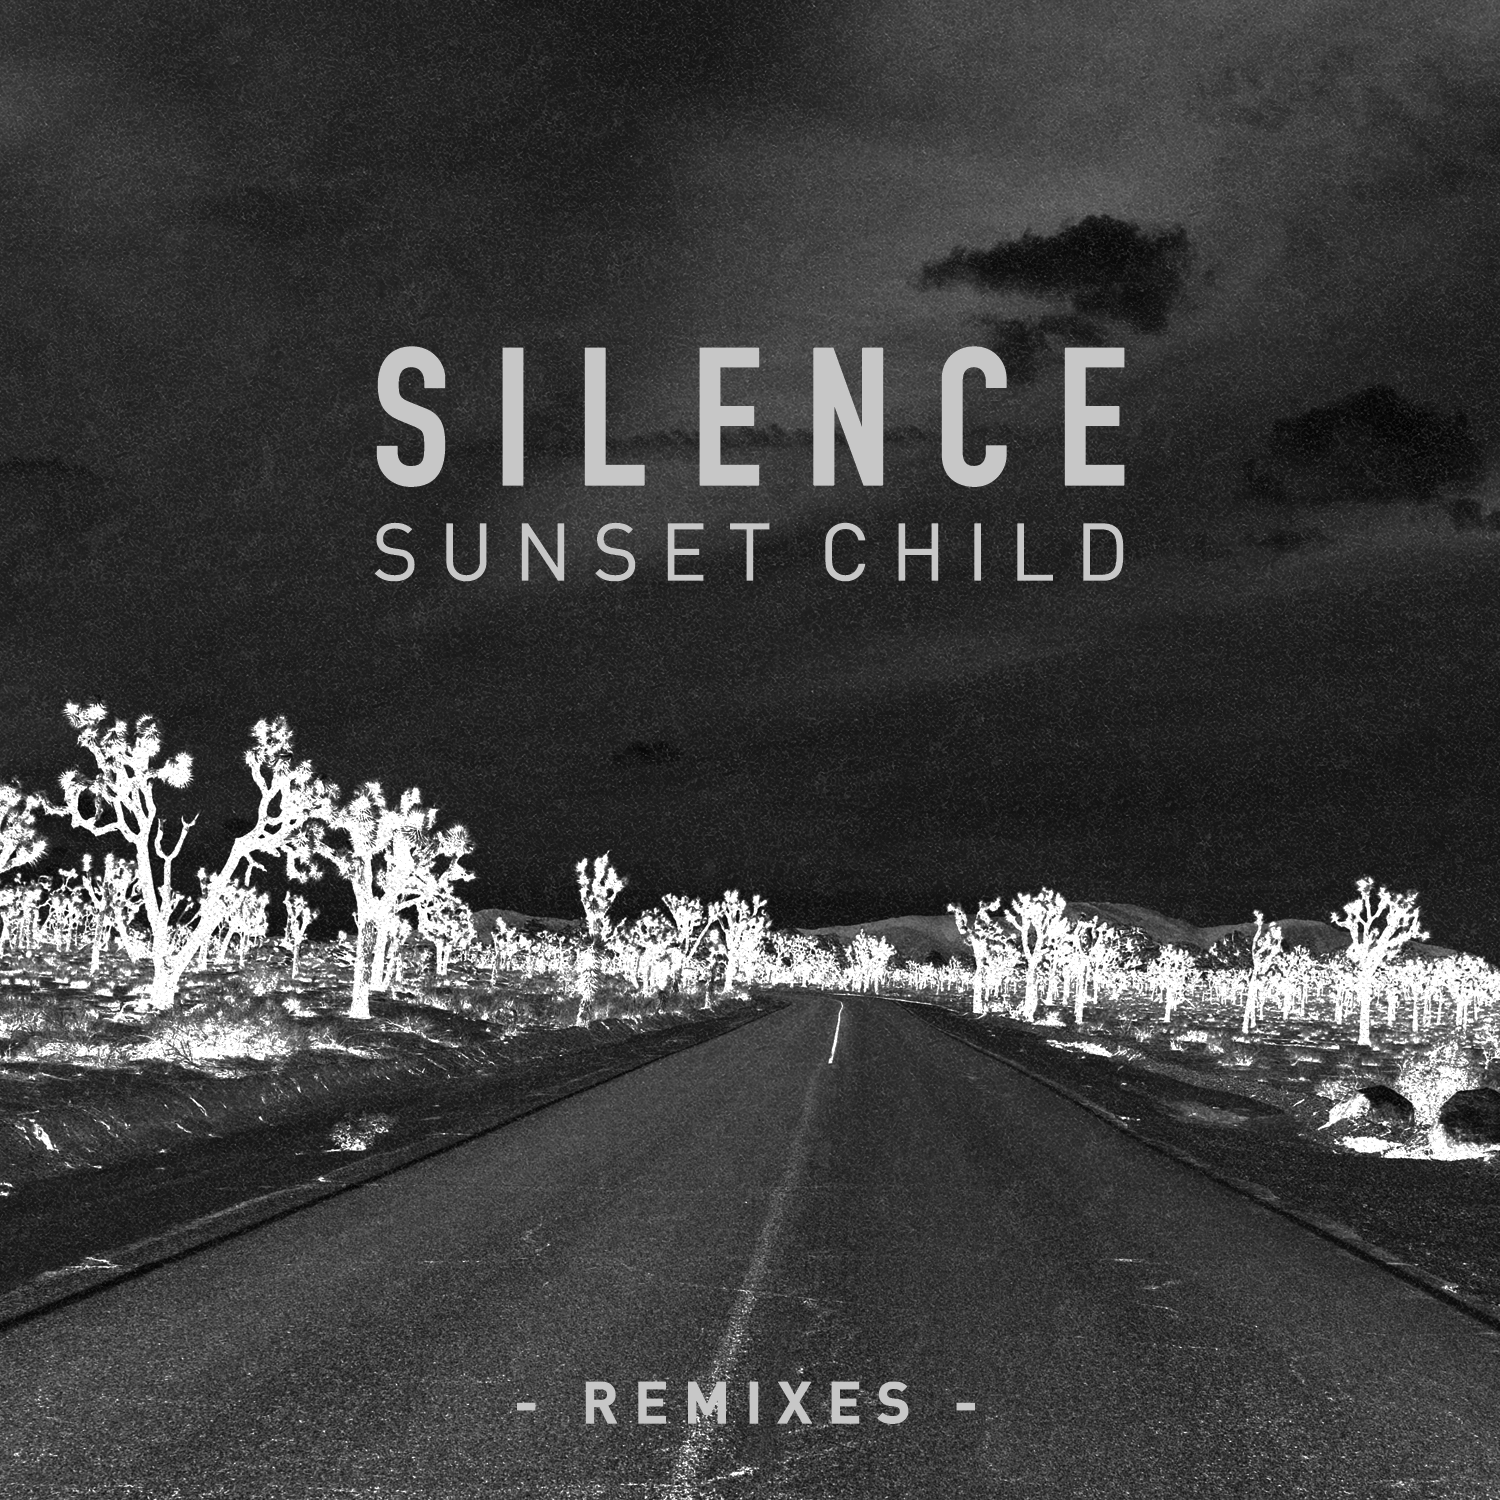 Sunset child silence gt wildfire remix ultra for House remixes of classic songs